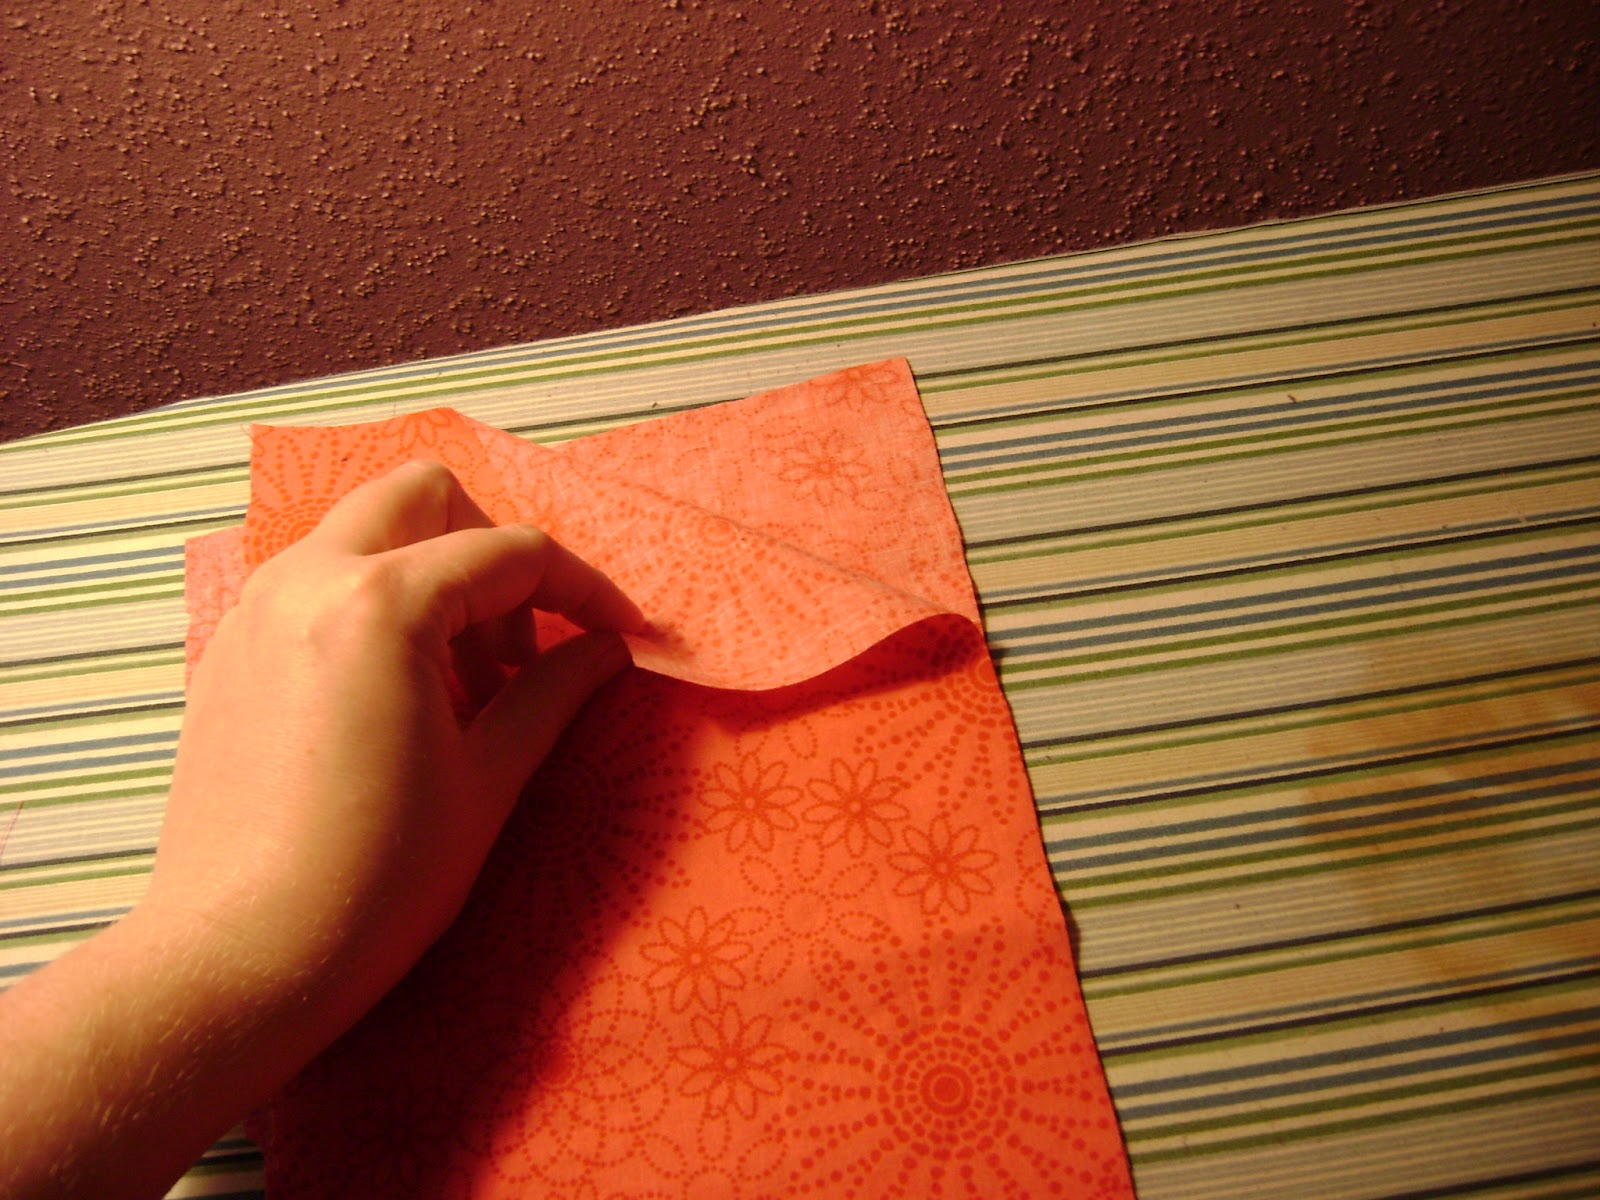 French seams the Stacie way: Tutorial - Stacie Thinks She Can